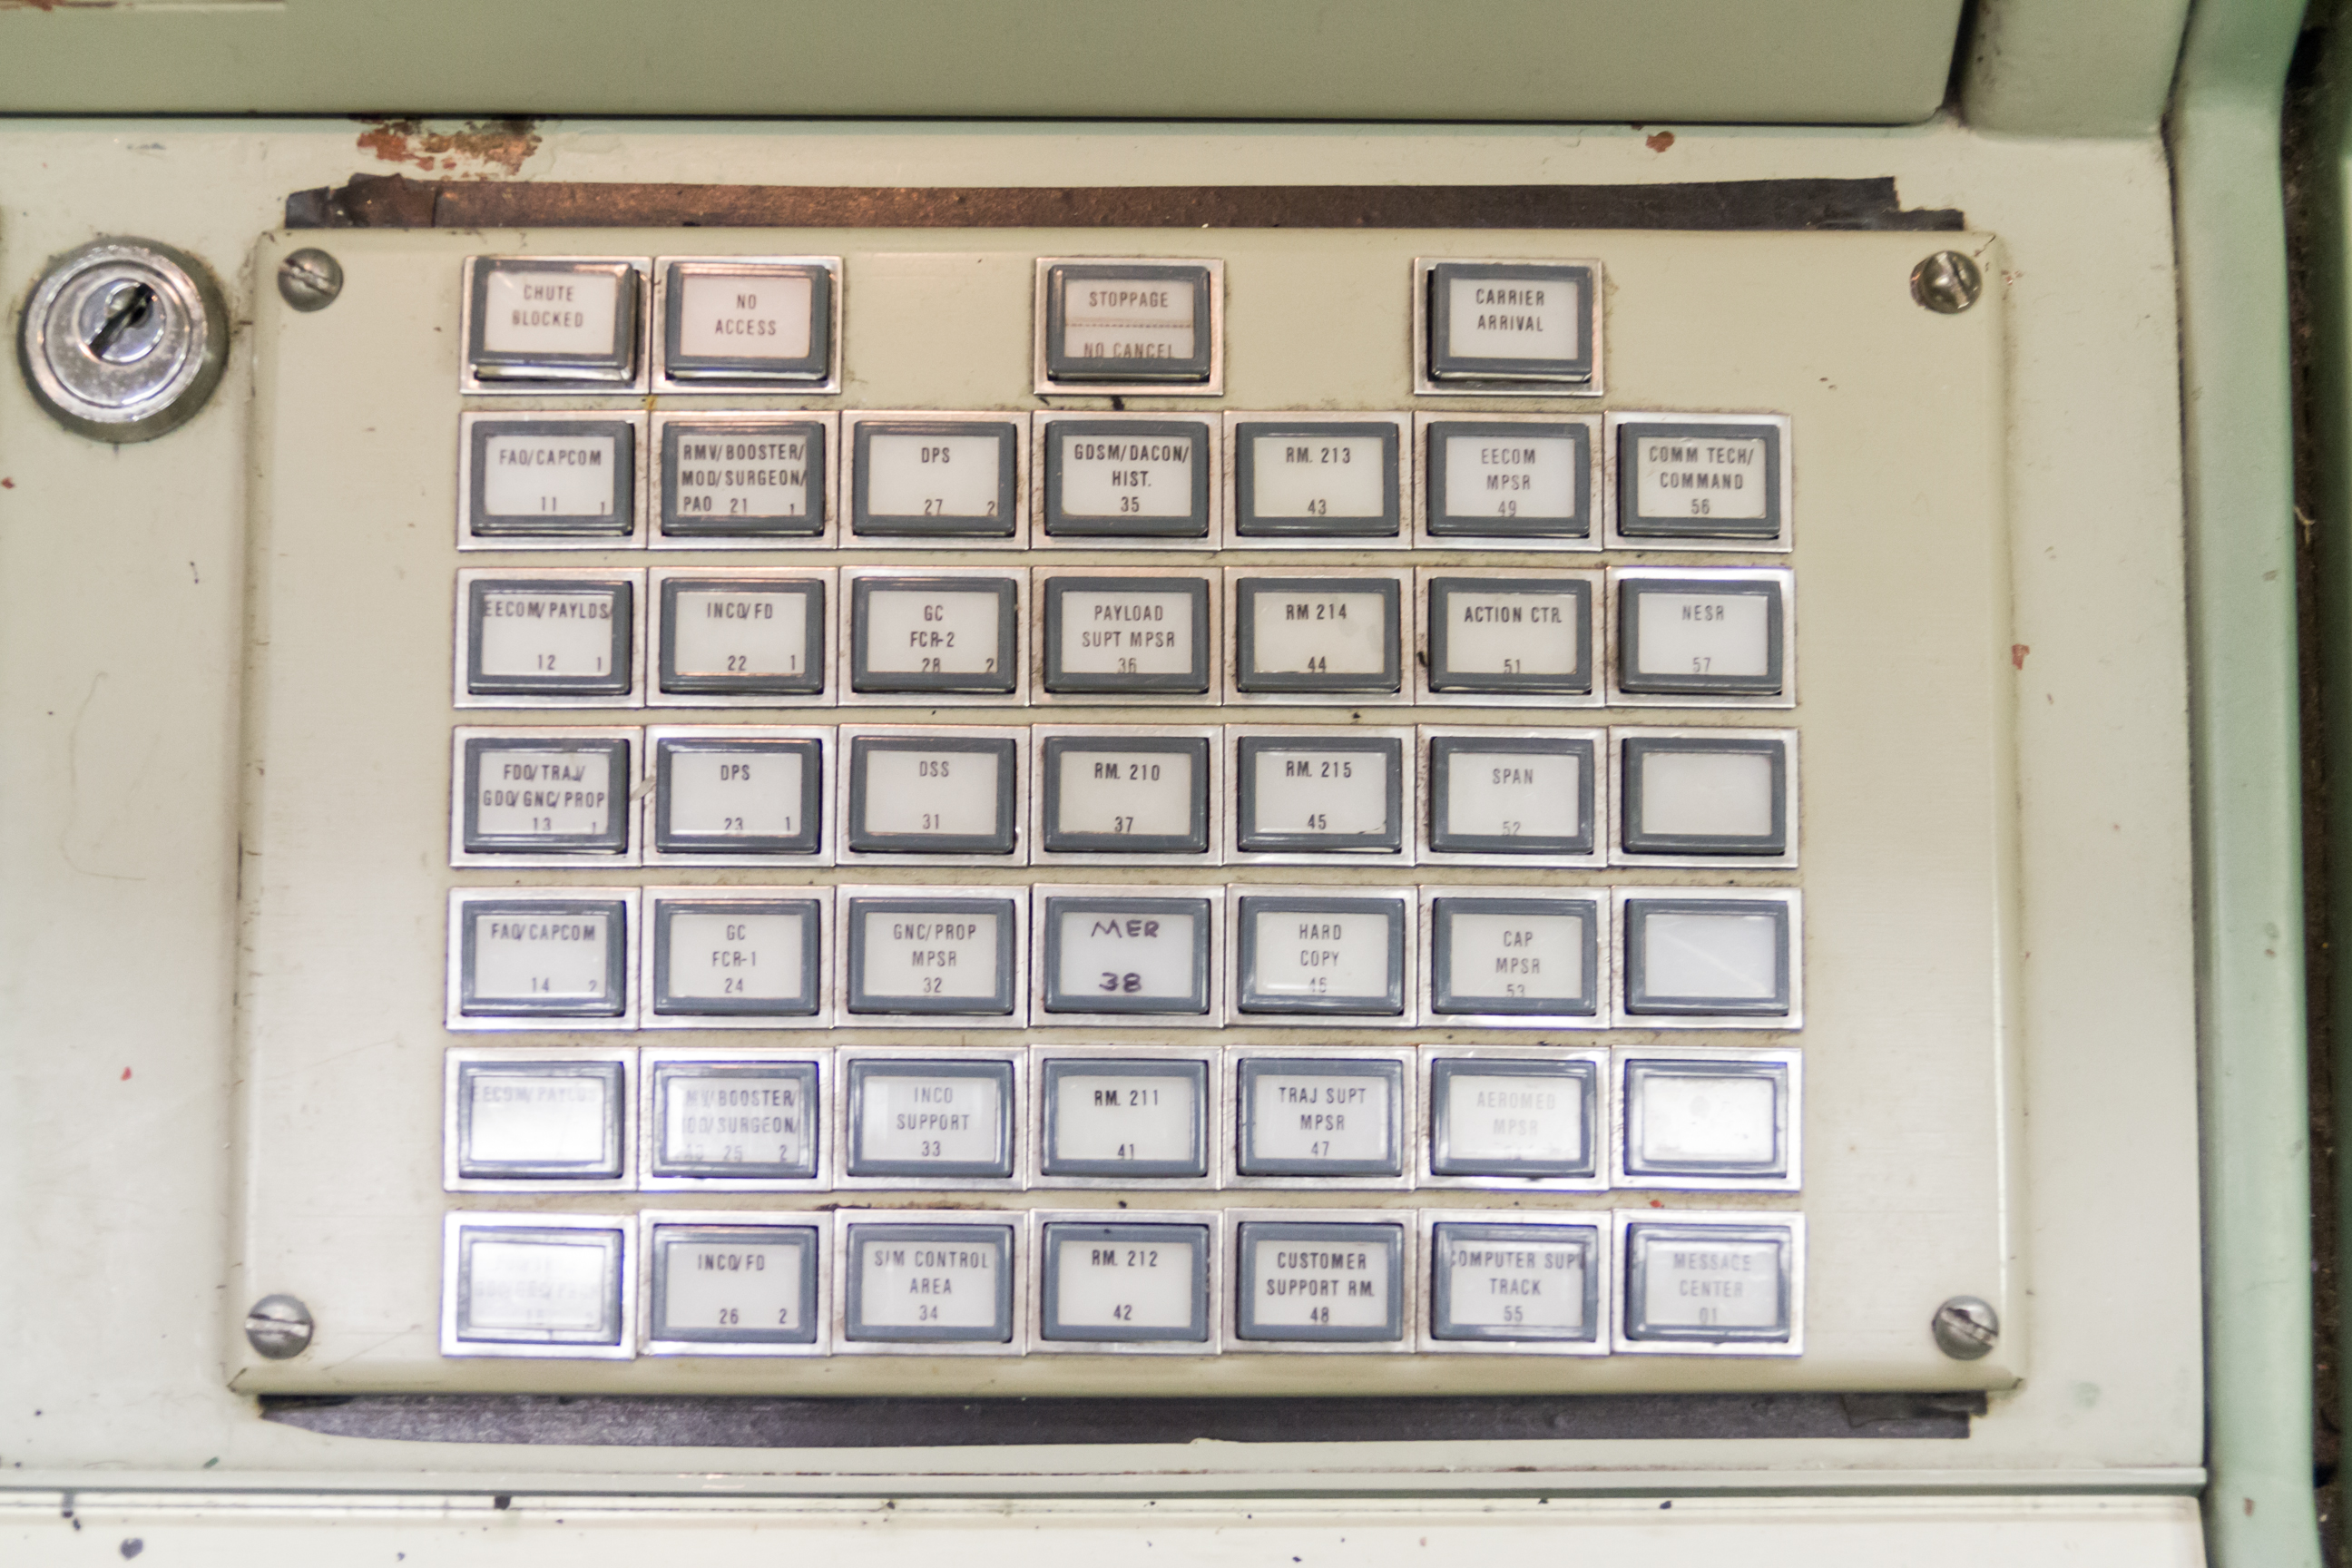 Close-up of a p-tube control panel, showing the destinations a tube could be sent.